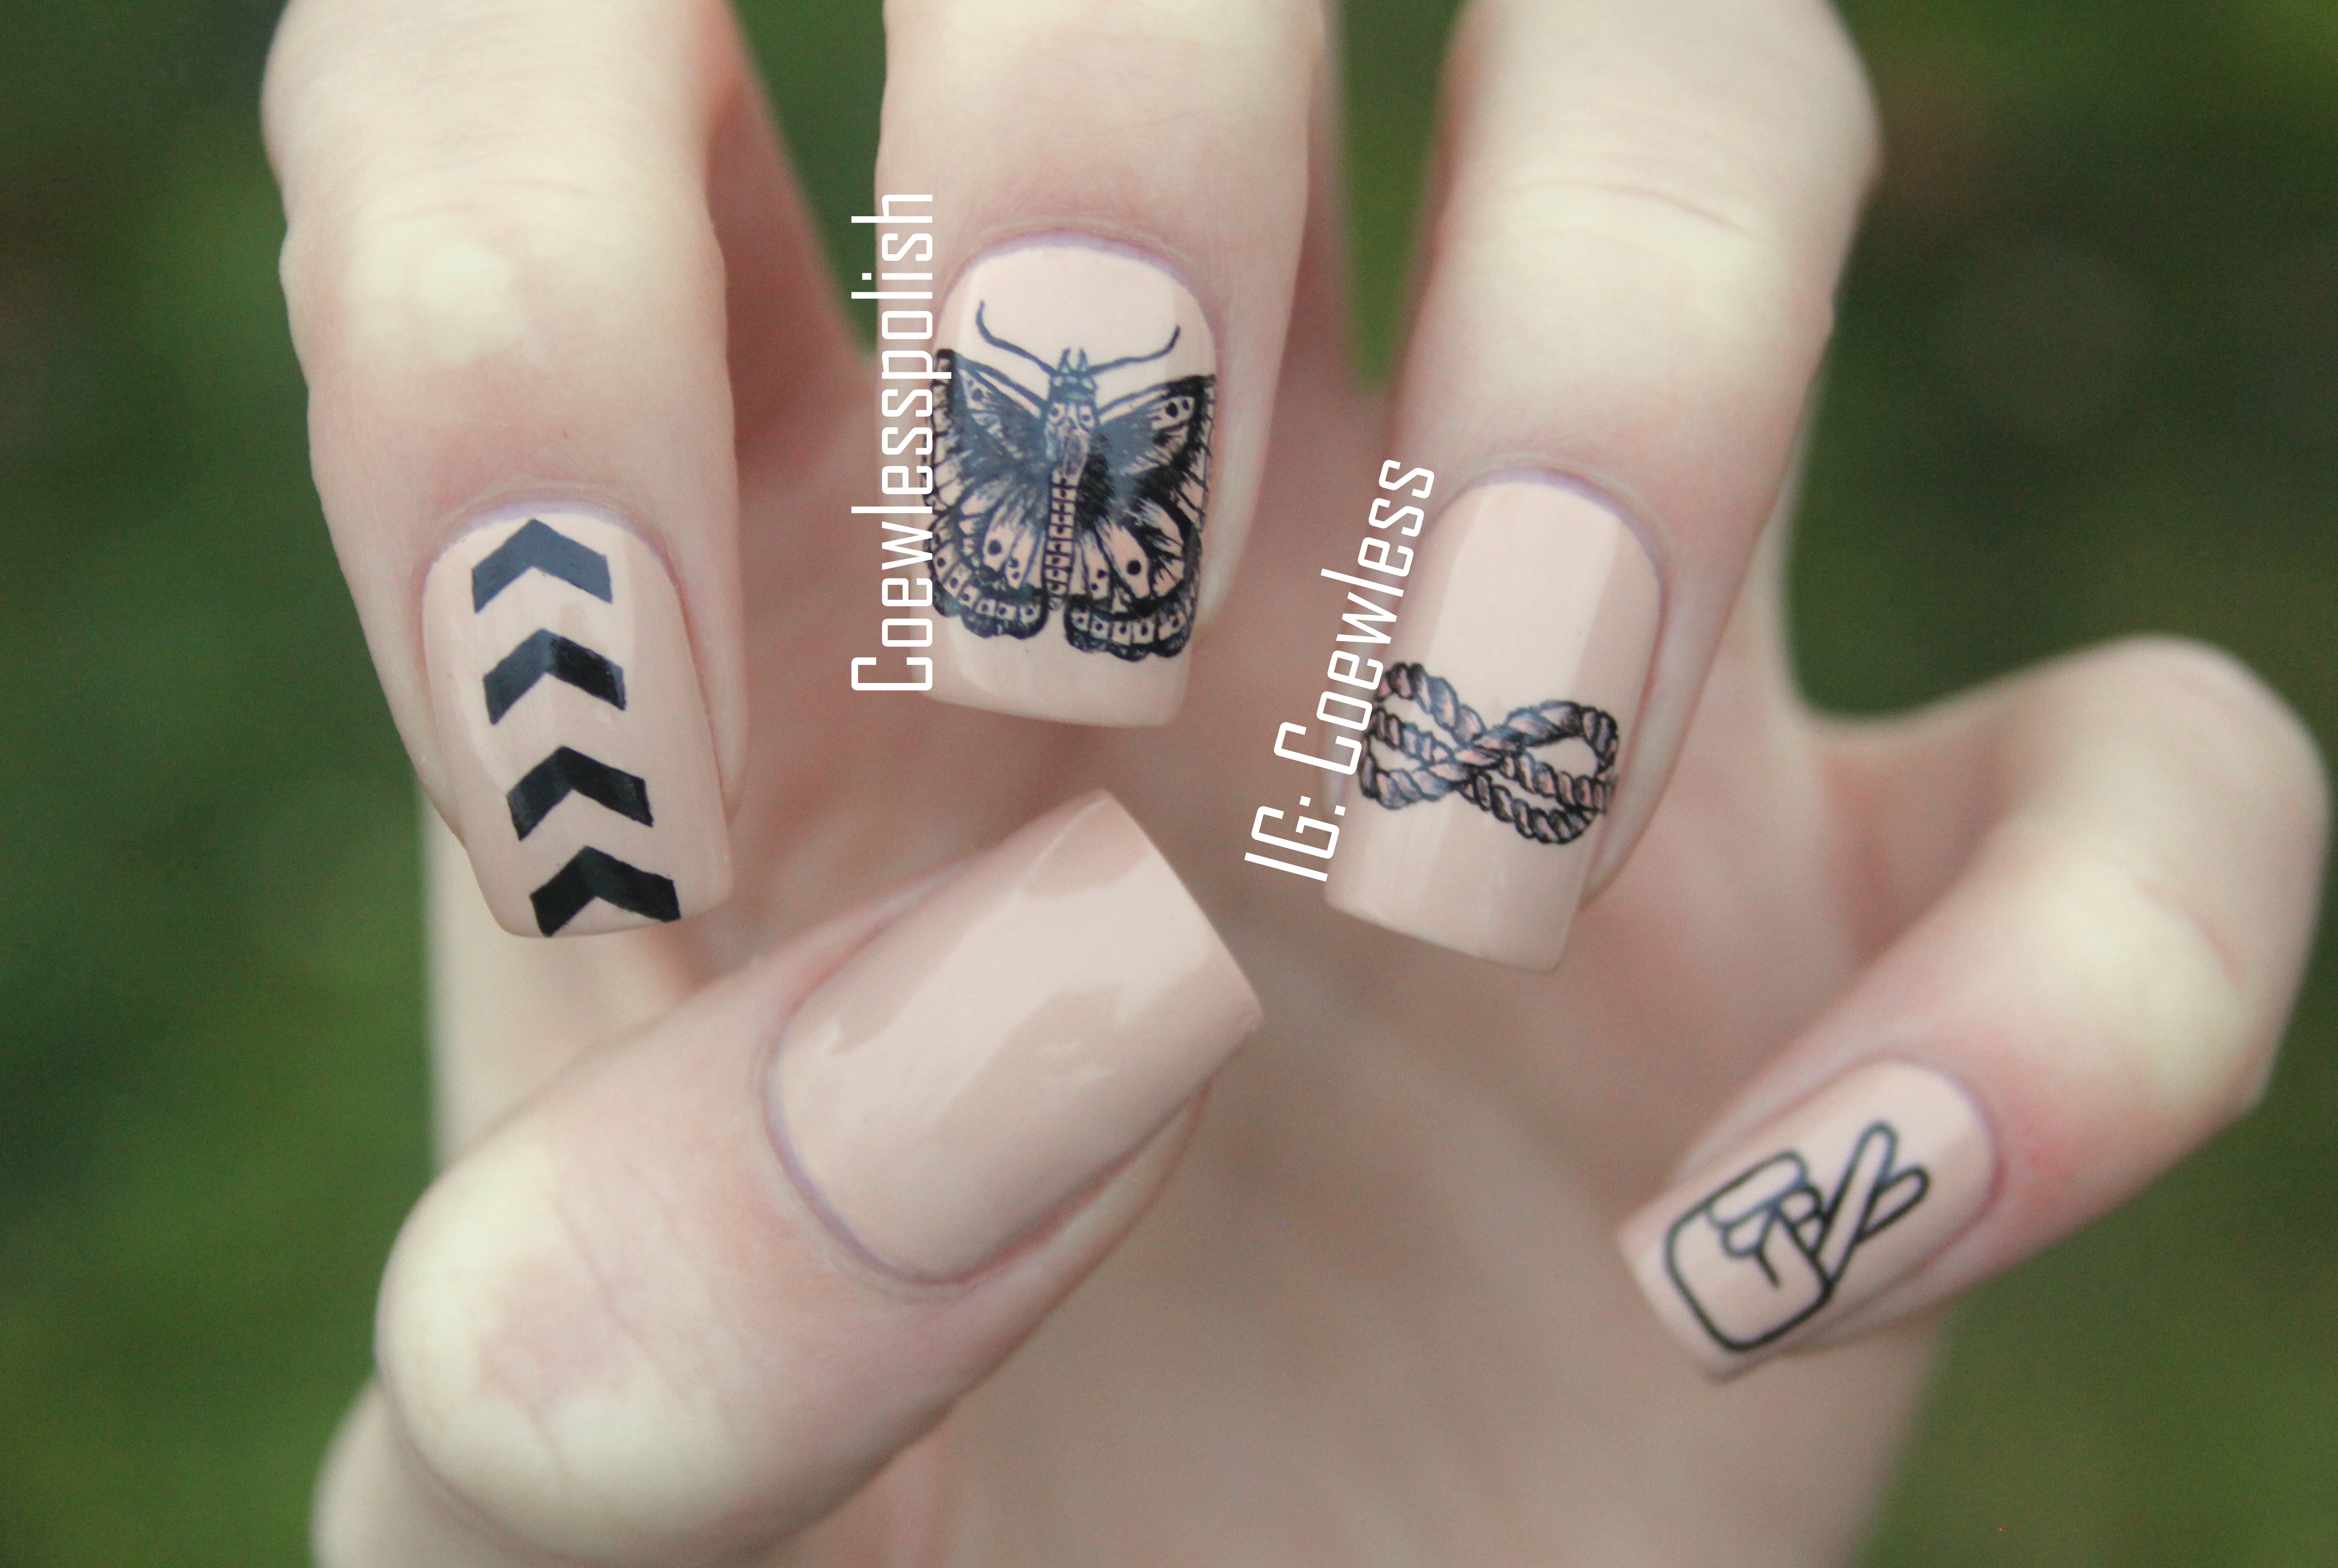 Single Line Nail Art : One direction nail designs pictures specs price